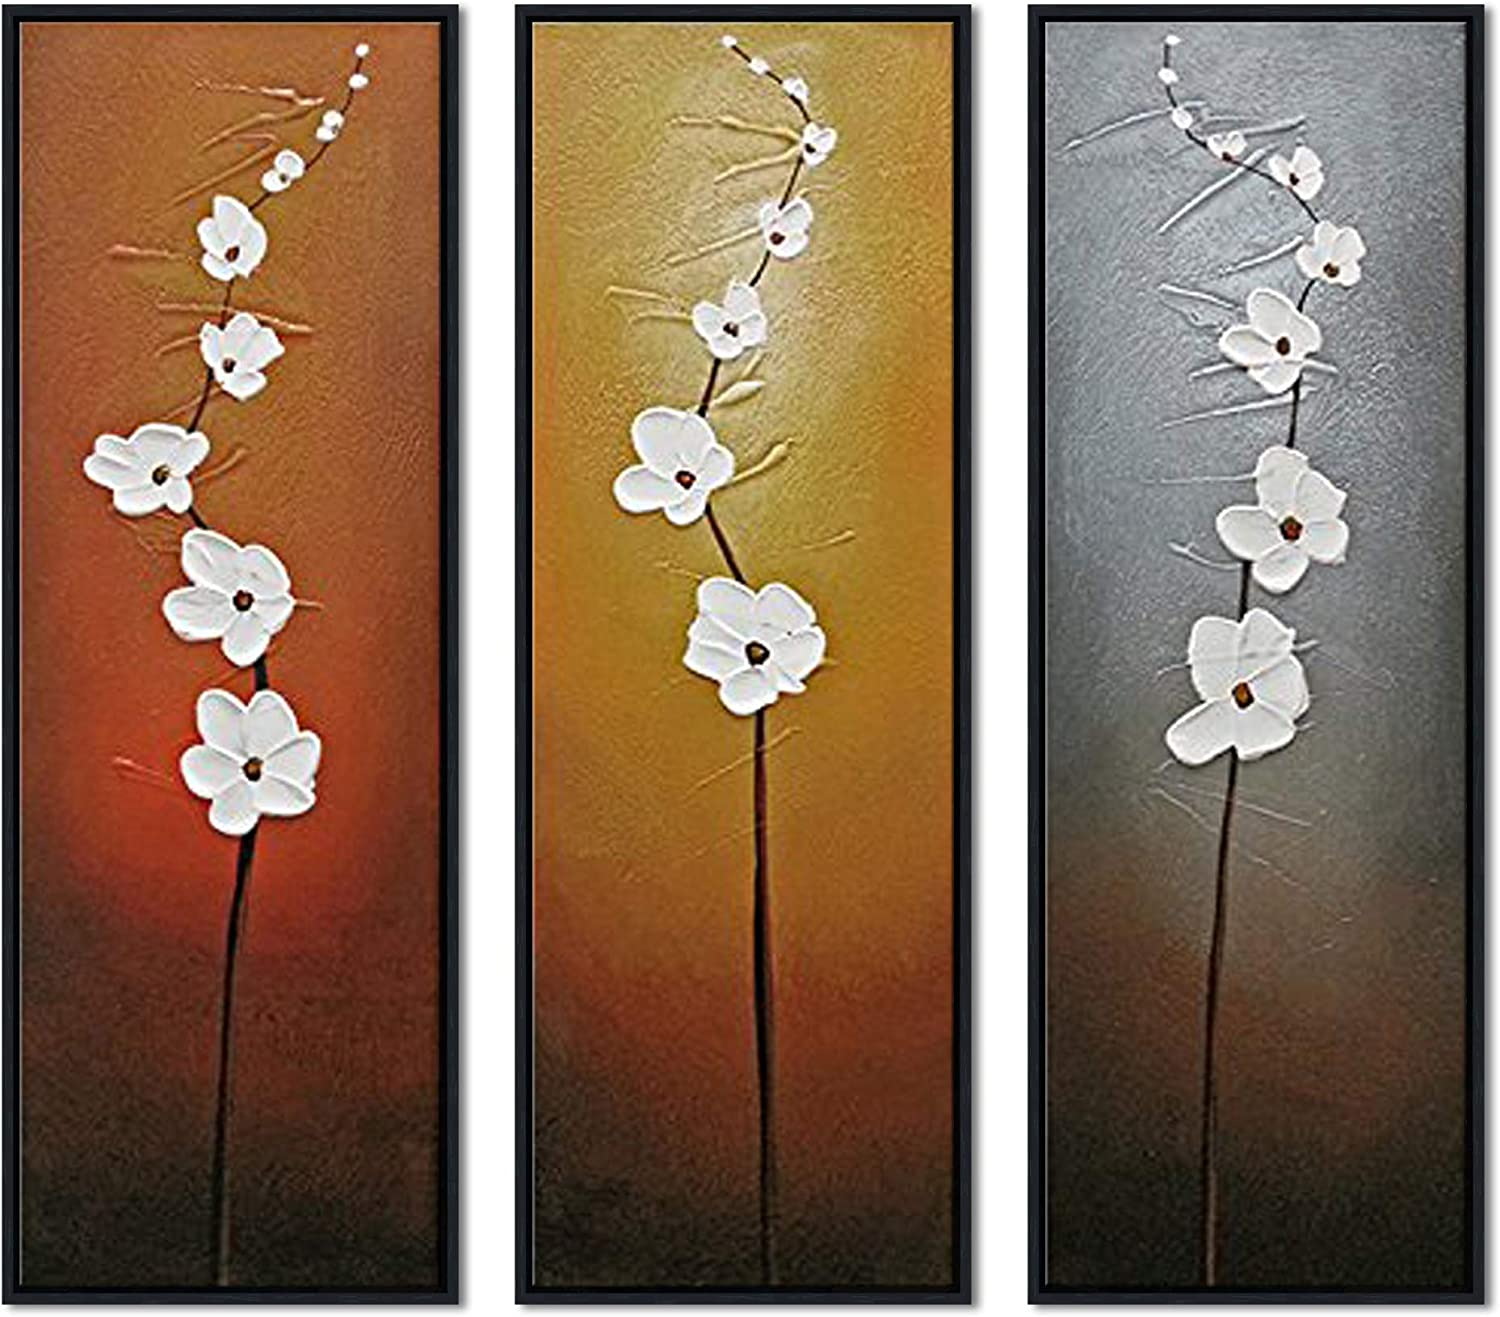 Wieco Art Modern Contemporary Flowers Framed Artwork 3 Panels 100% Hand Painted Abstract Floral Oil Paintings on Canvas Wall Art D¨¦cor for Living Room Home Decorations Black FL3086-3090-BF